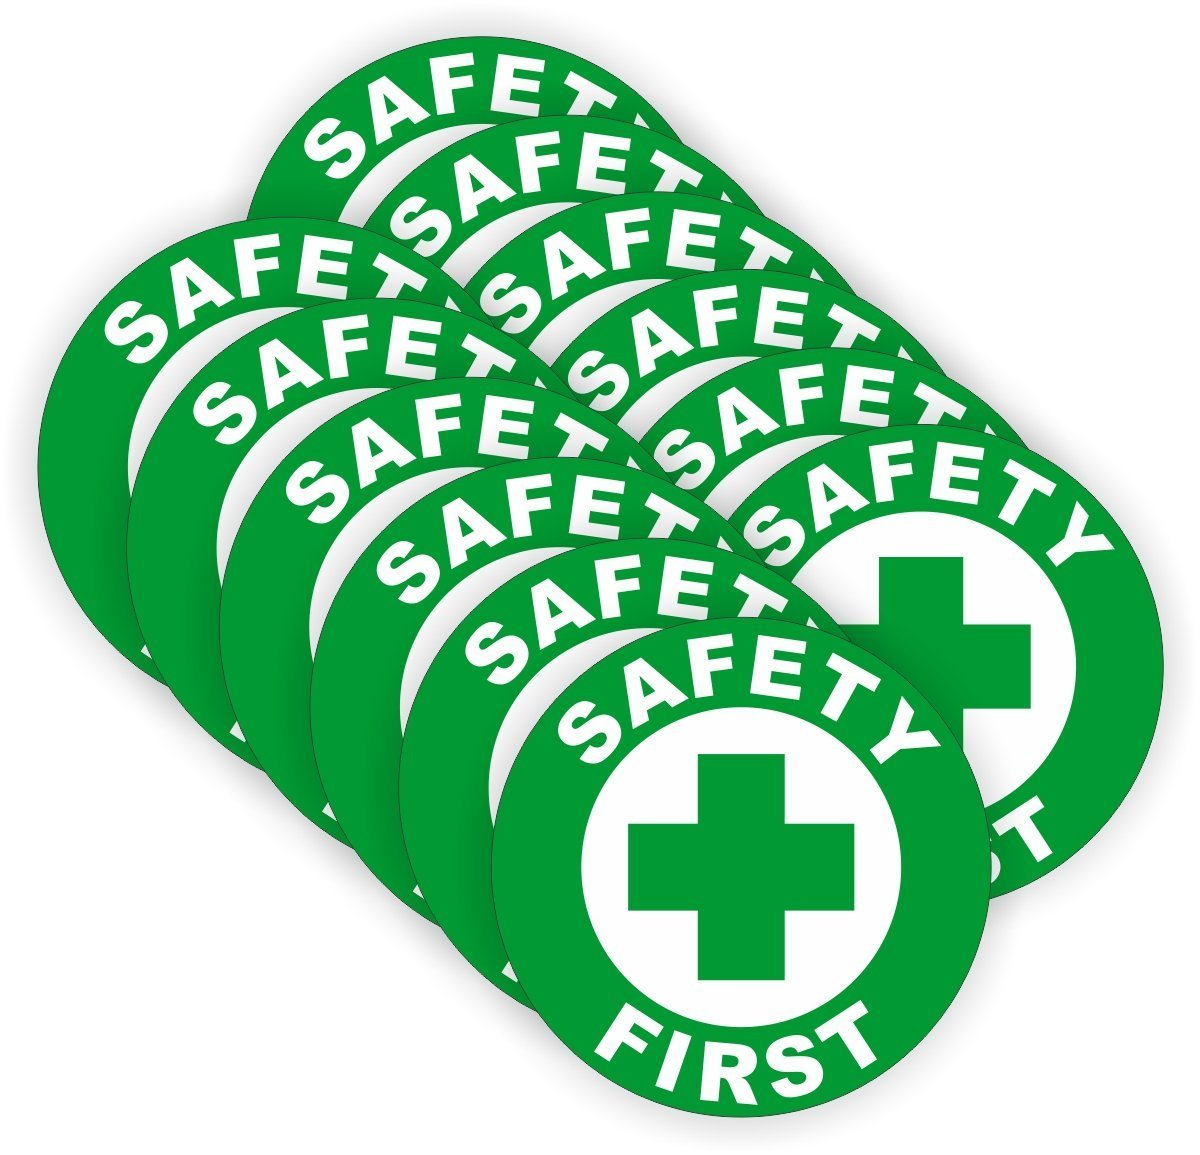 StickerDad (12 PACK) Safety First circle - size: 2'' ROUND color: GREEN/WHITE - Full Color Printed Sticker for Hard Hat, Helmet, Windows, Walls, Bumpers, Laptop, Lockers, etc.